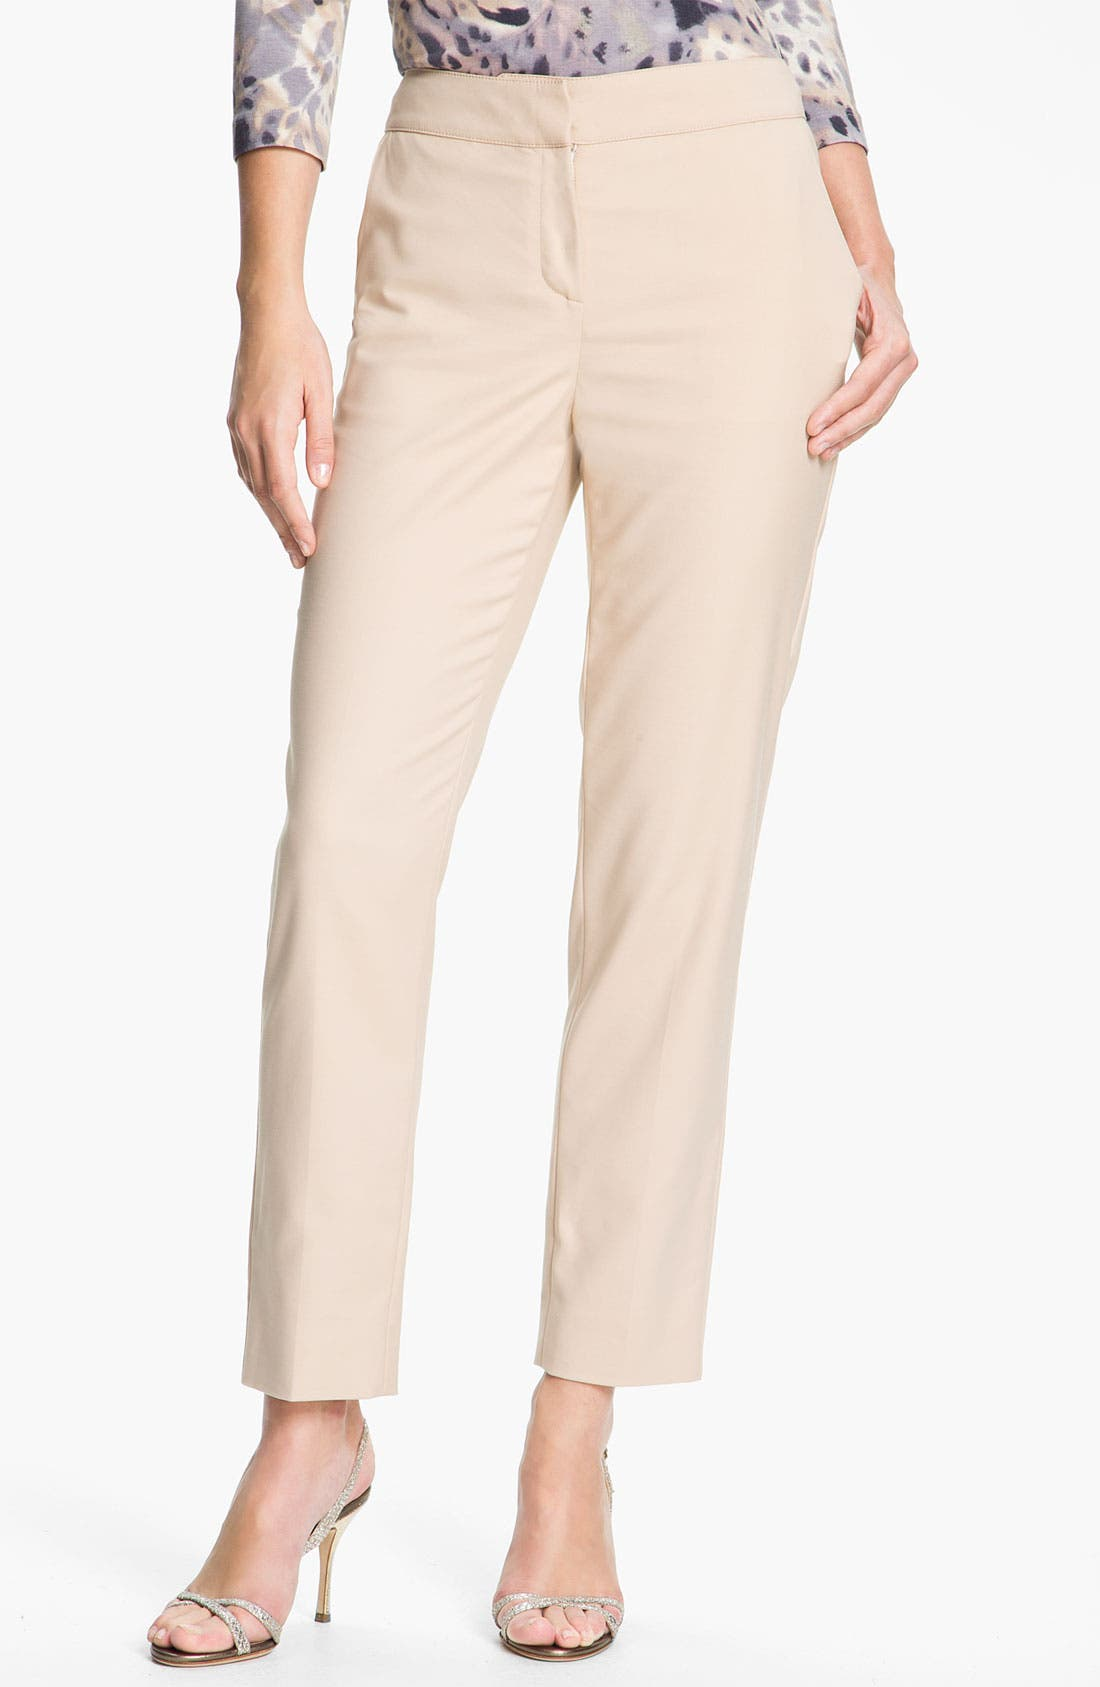 Alternate Image 1 Selected - St. John Collection 'Emma' Stretch Cotton Crop Pants